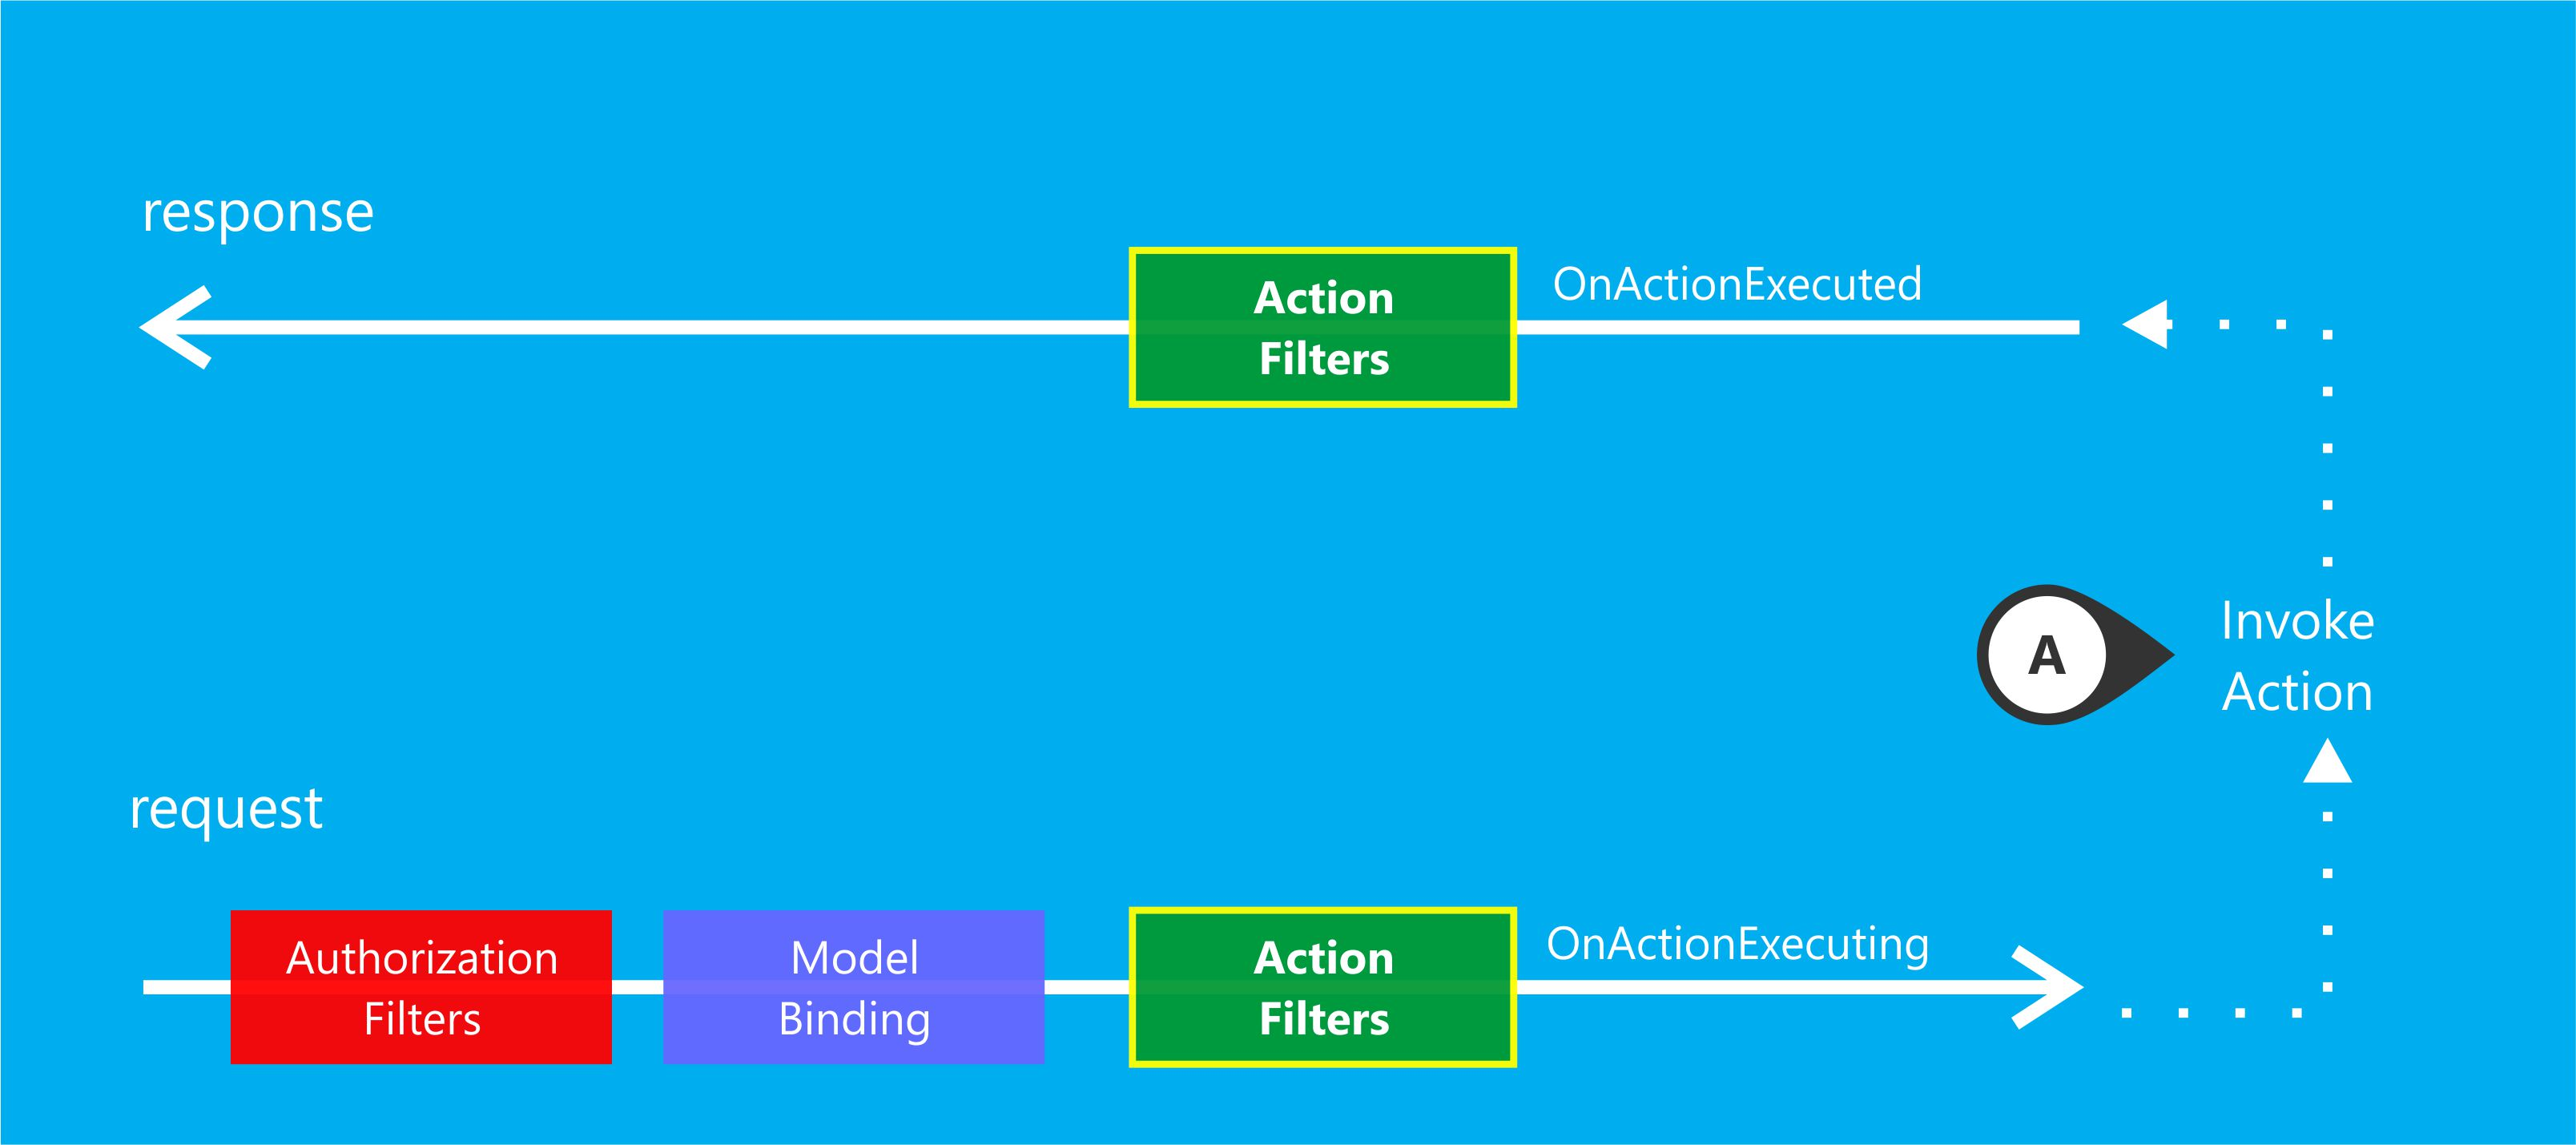 Action Filter - MVC Pipeline